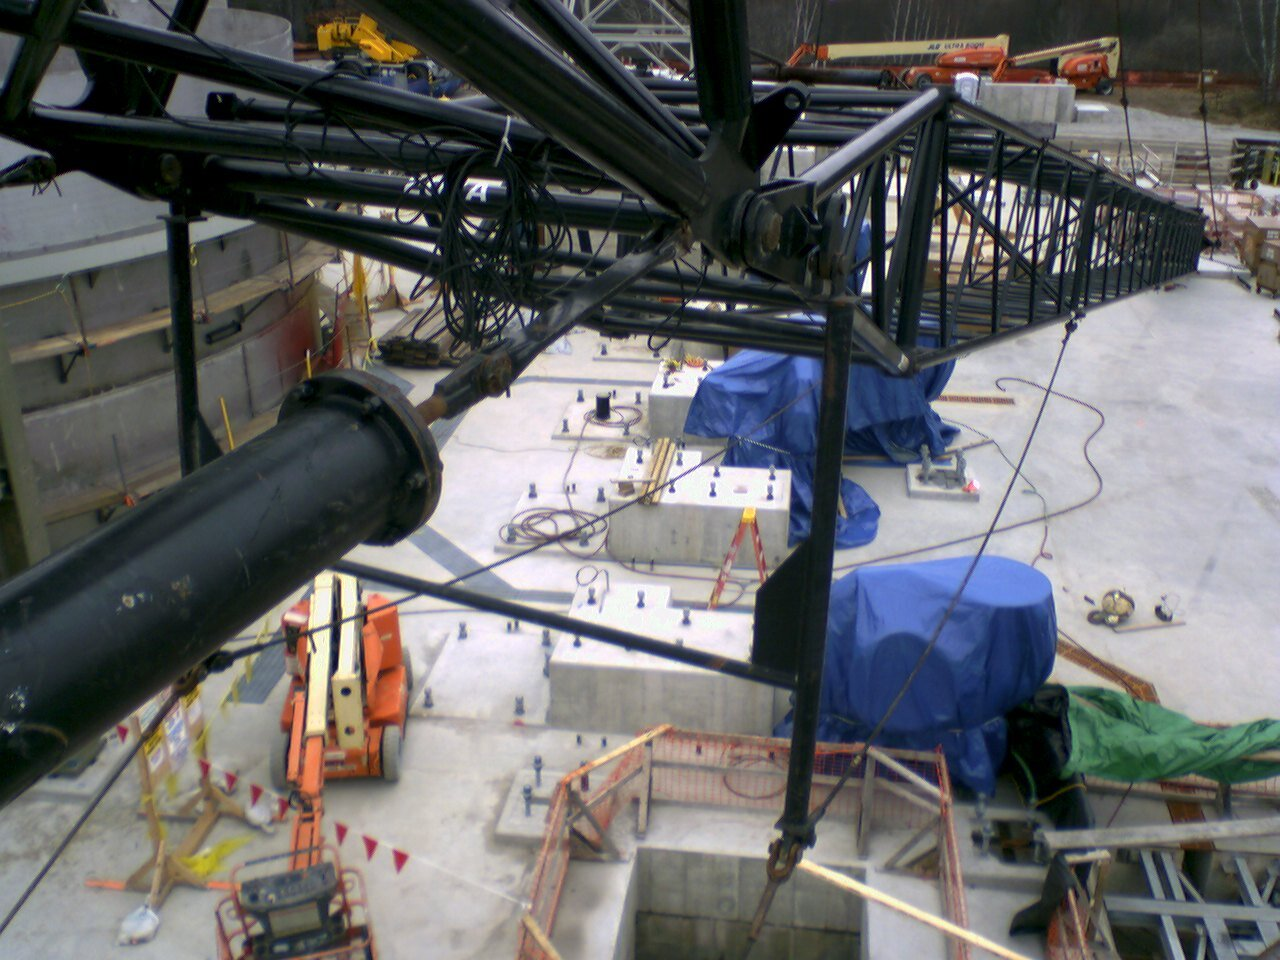 Inspecting the luffing jib of this Manitowoc 2250